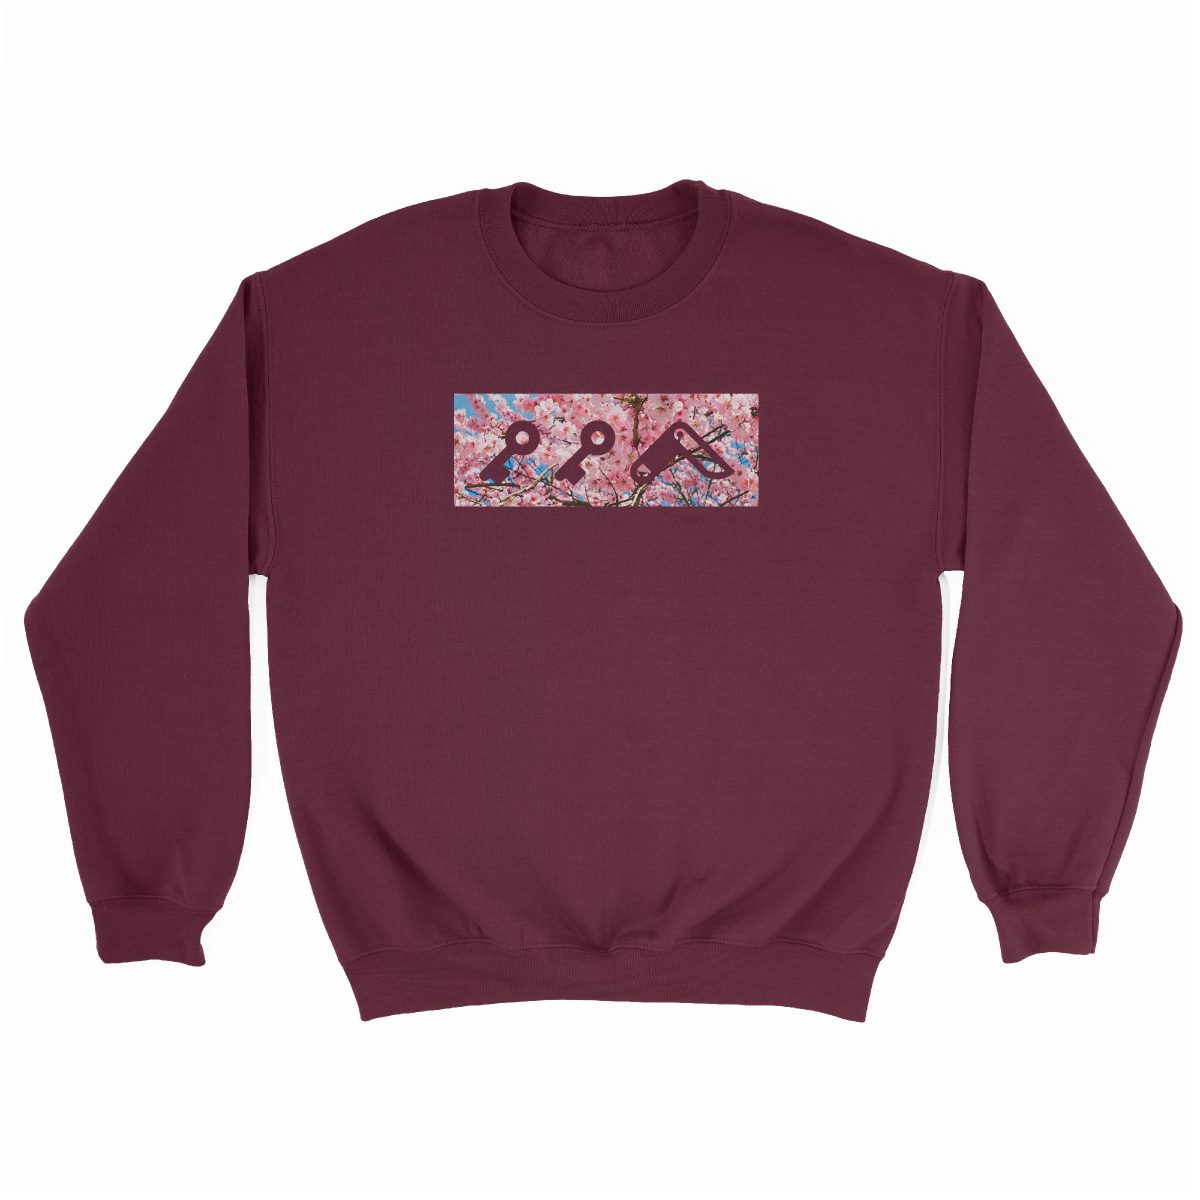 """CHERRY FLOWER bOM"" kikicutt logo japanese cherry tree soft graphic sweatshirt in maroon"